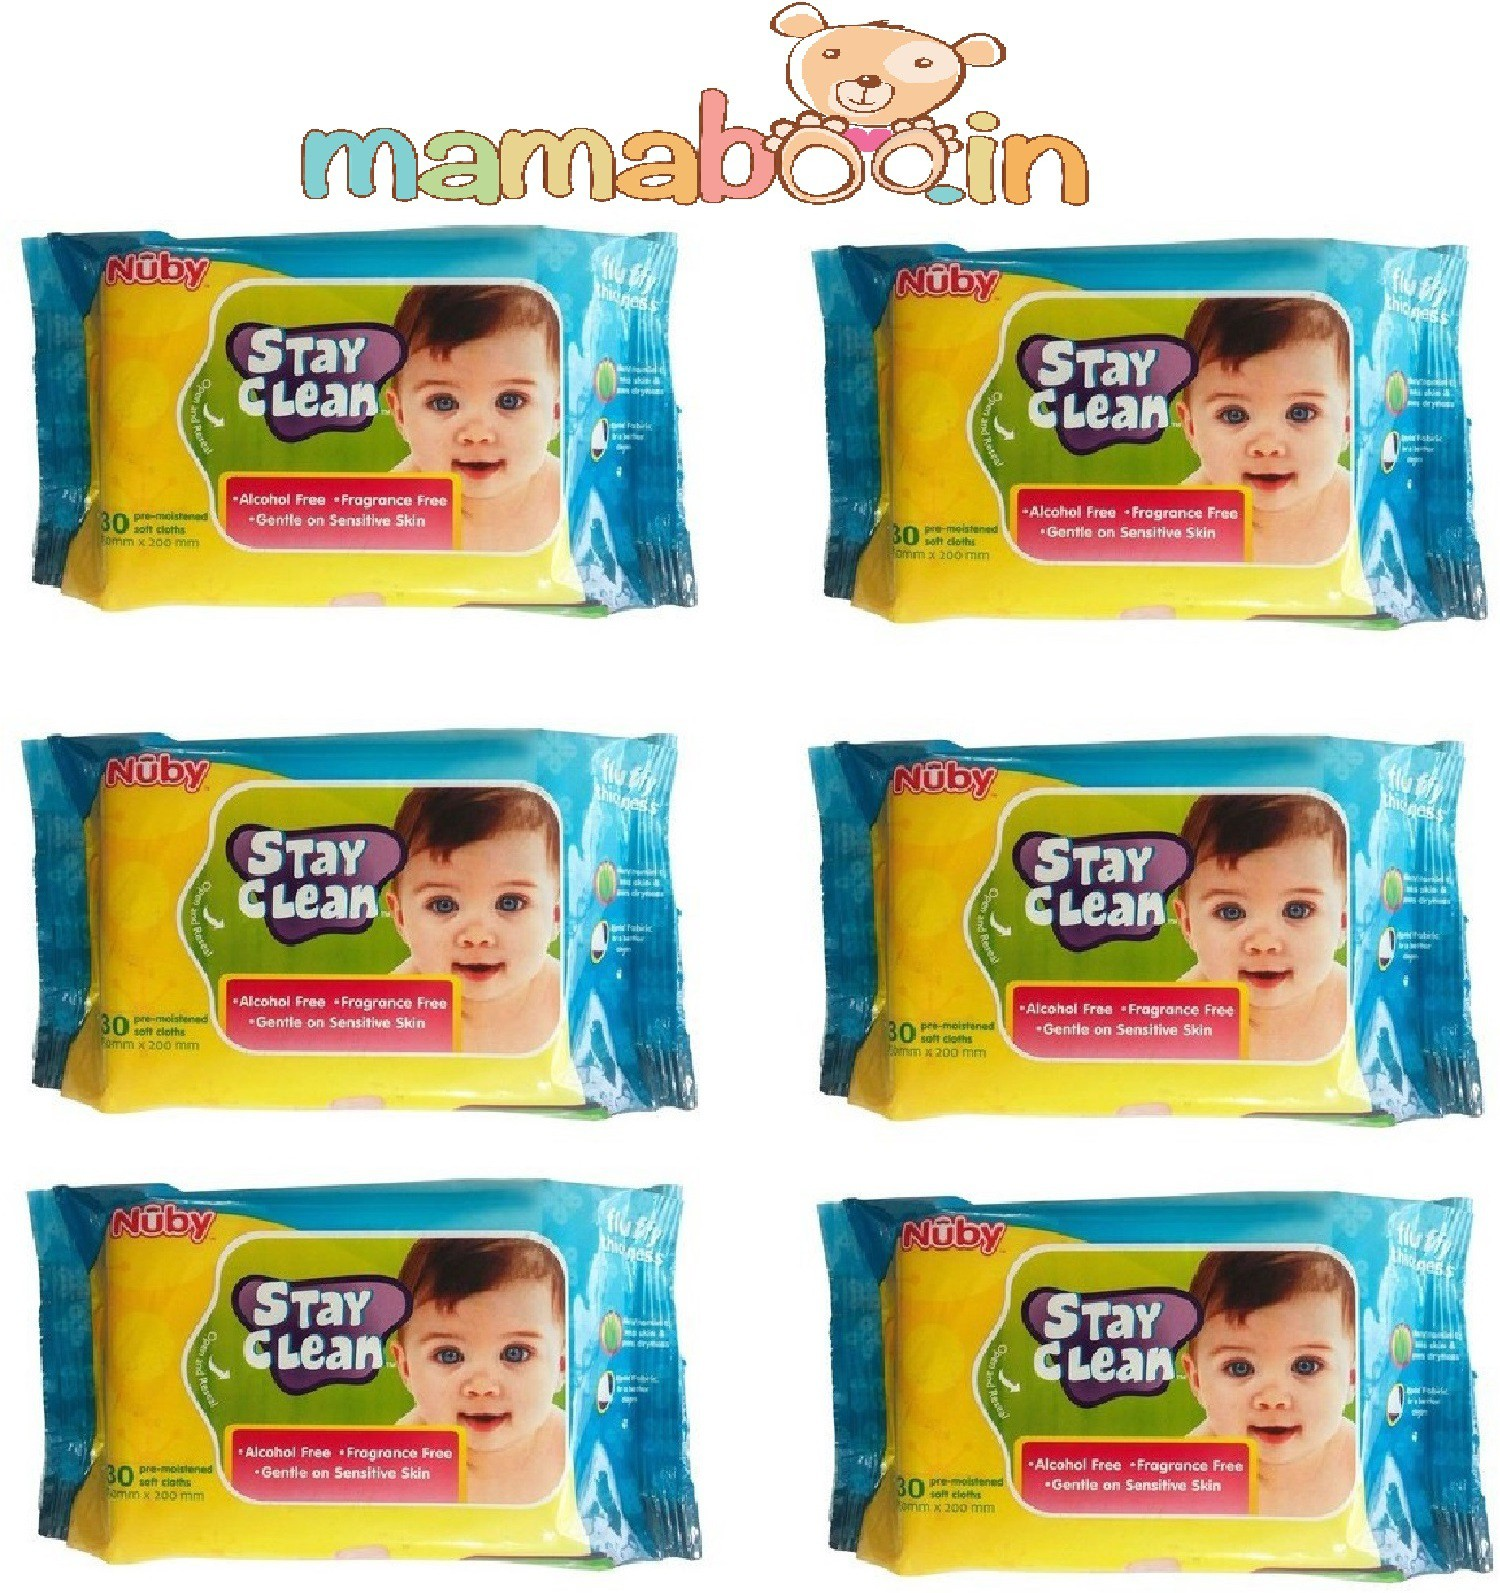 Mamaboo Nuby Baby Wet Wipes(6 Pieces)